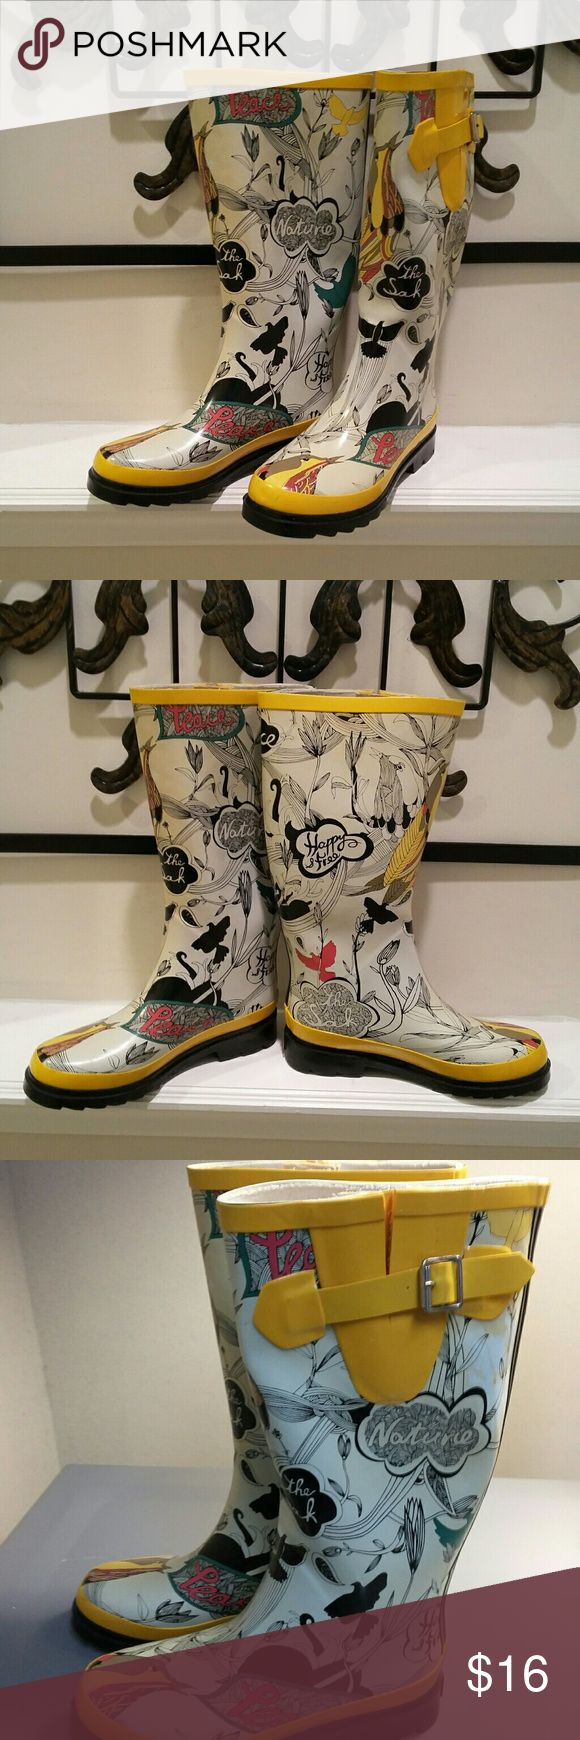 The Sakroots Wellington Boots White, Yellow and Red with Black Accents and a gripped sole. Side decorated with a yellow rubber strap Happy, peace, love, joy motifs printed on boot in black.  Pre Owned Some Scuffs and slight discoloration  One buckle is slightly damaged but these boots are still wearable. Use in Garden or a Rainy day or just for fun sense they are so cute. Size 6 Sakroots  Shoes Winter & Rain Boots